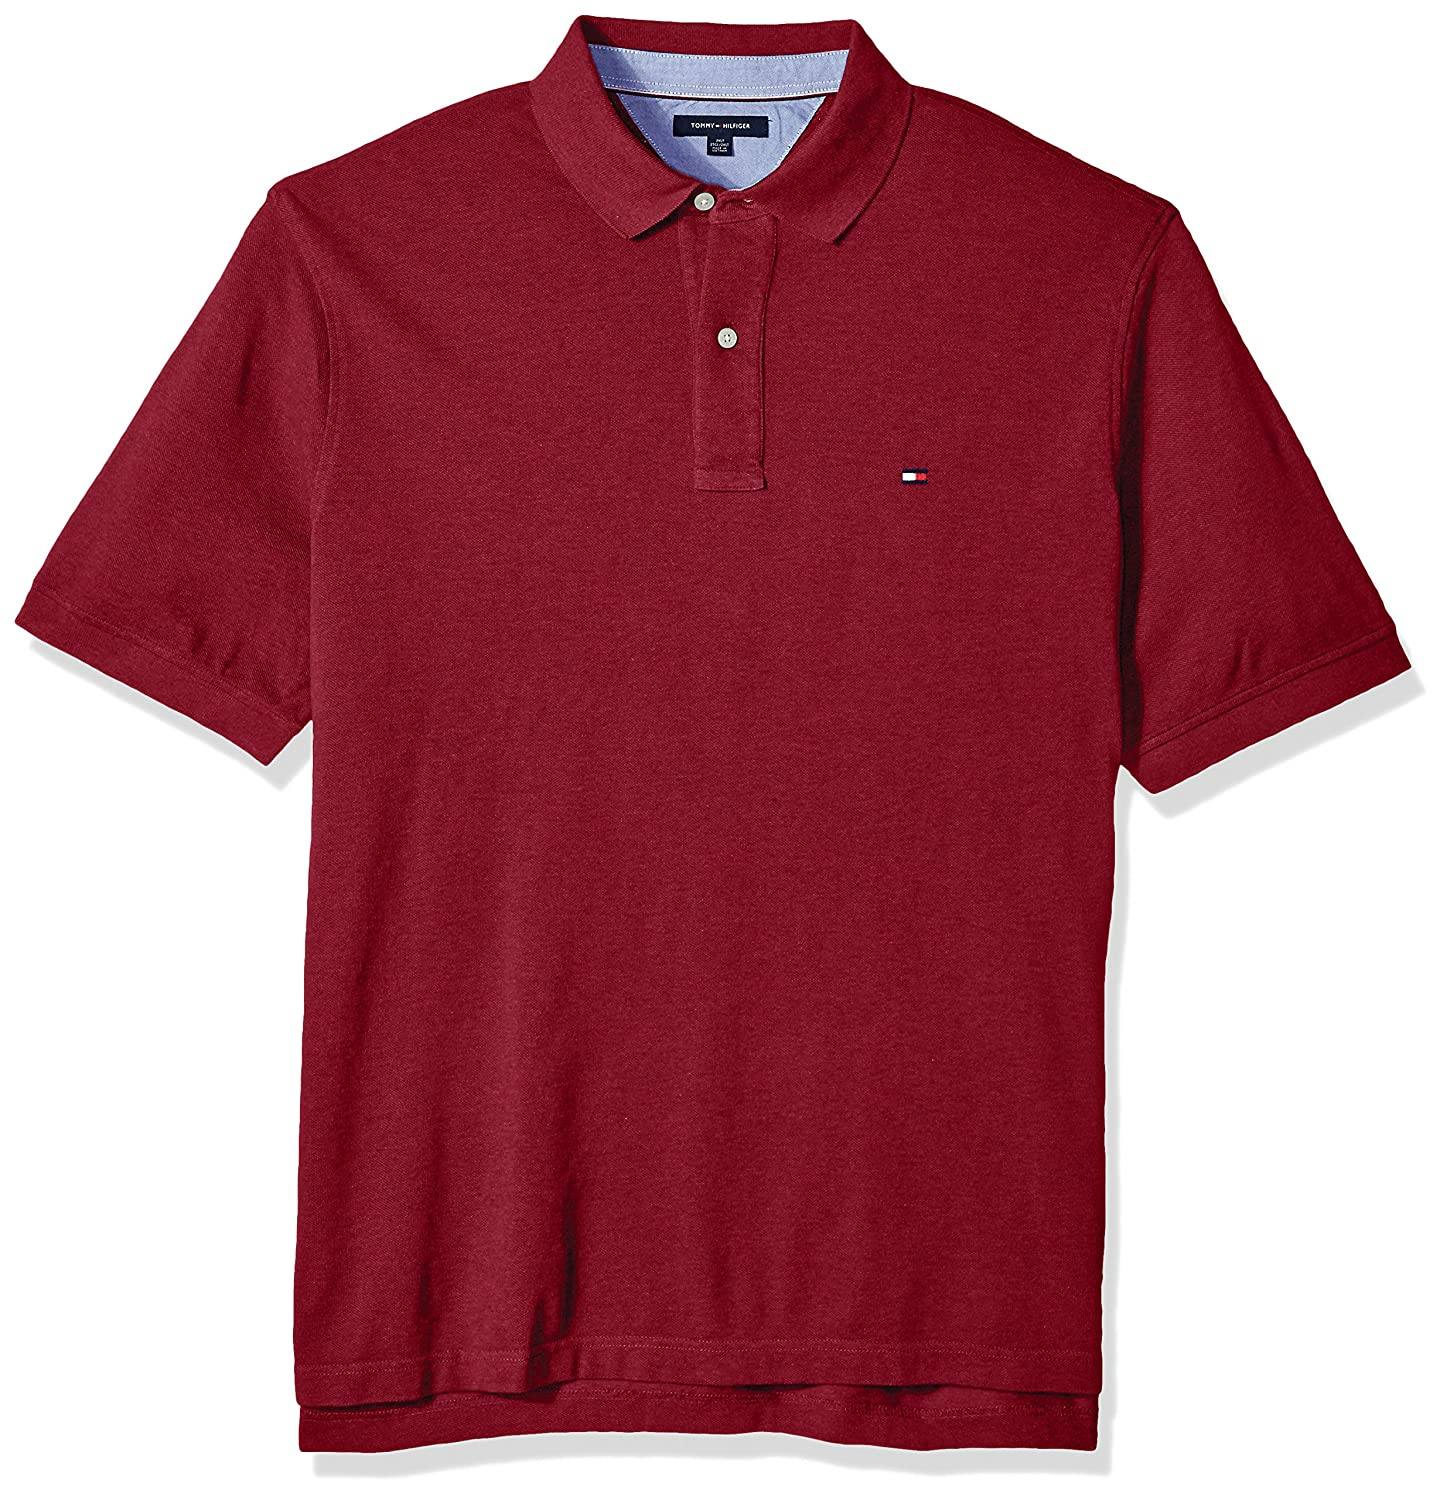 c98f1342 Tommy Hilfiger big and tall polo shirt for men in our best-selling fit. Two  button placket. Tommy Hilfiger flag embroidery at chest. Soft feel